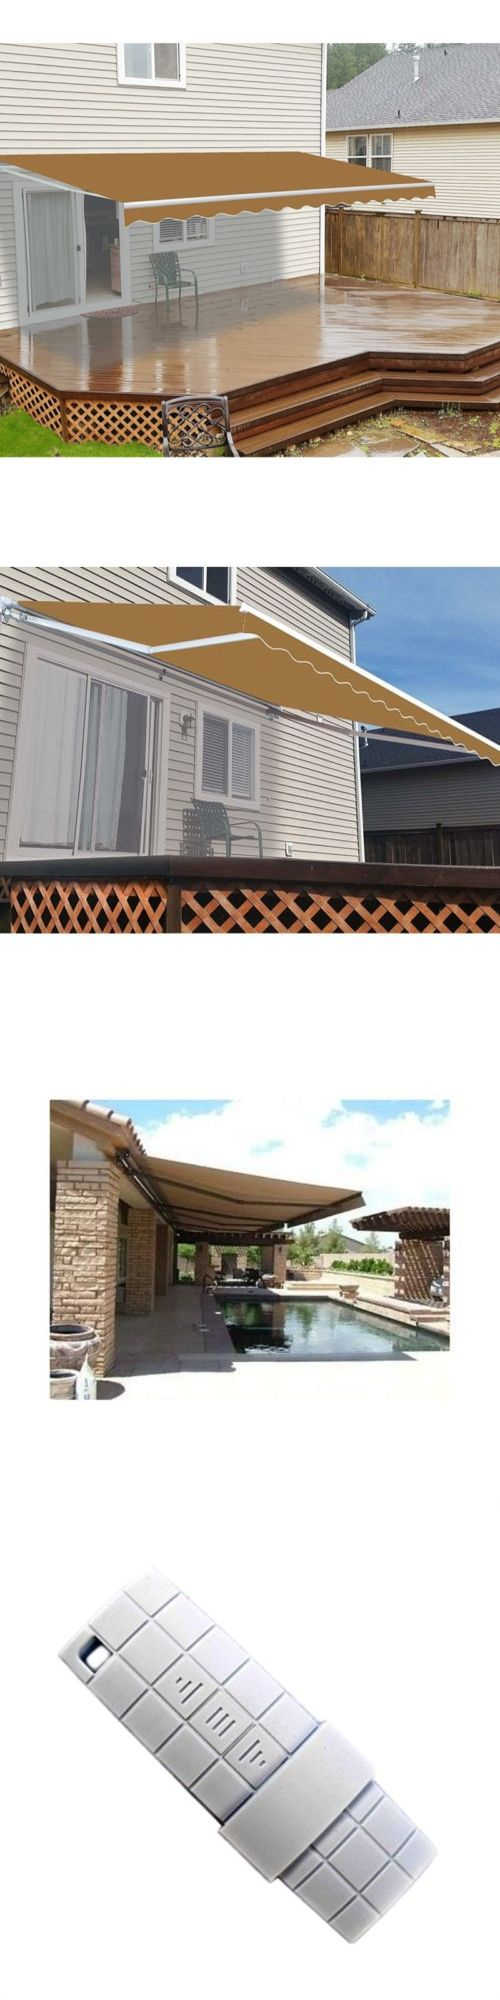 Awnings and Canopies 180992: Aleko Motorized Retractable Patio Awning 20 X 10 Ft Sand Color -> BUY IT NOW ONLY: $790 on eBay!